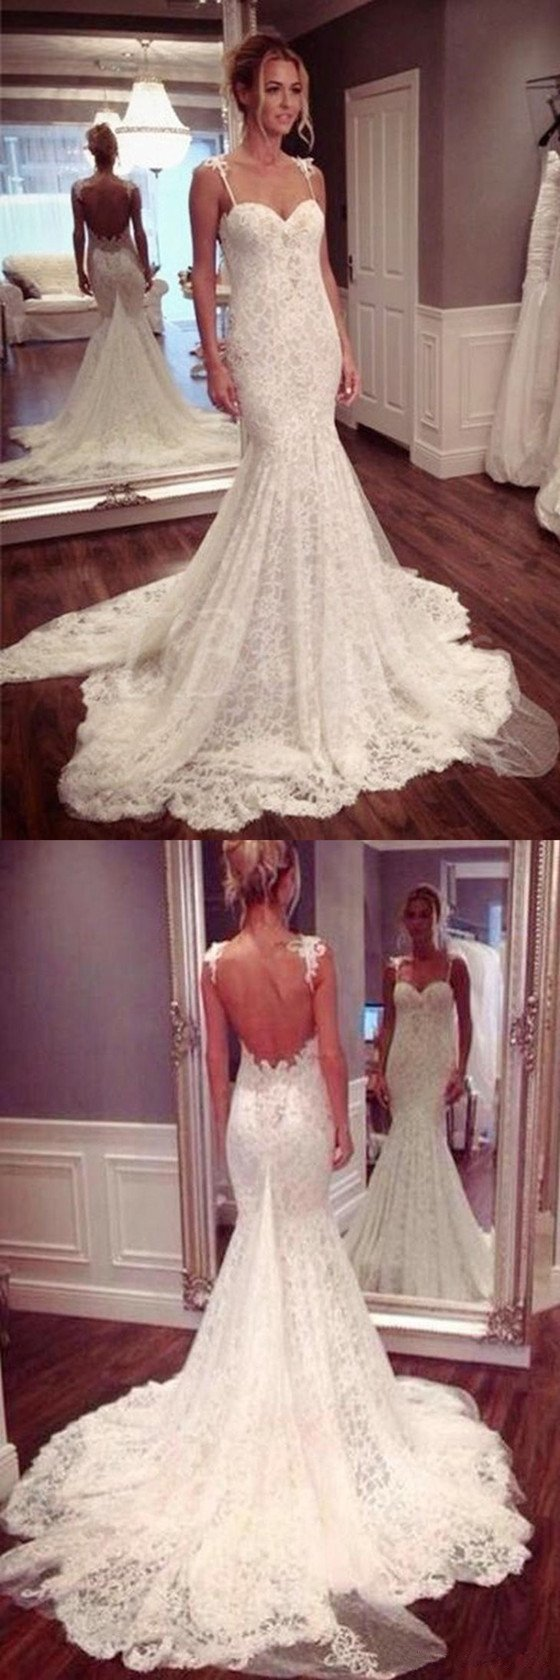 Charming Sexy Backless Spaghetti Straps Sweetheart Mermaid Long Wedding Dress, WD0376